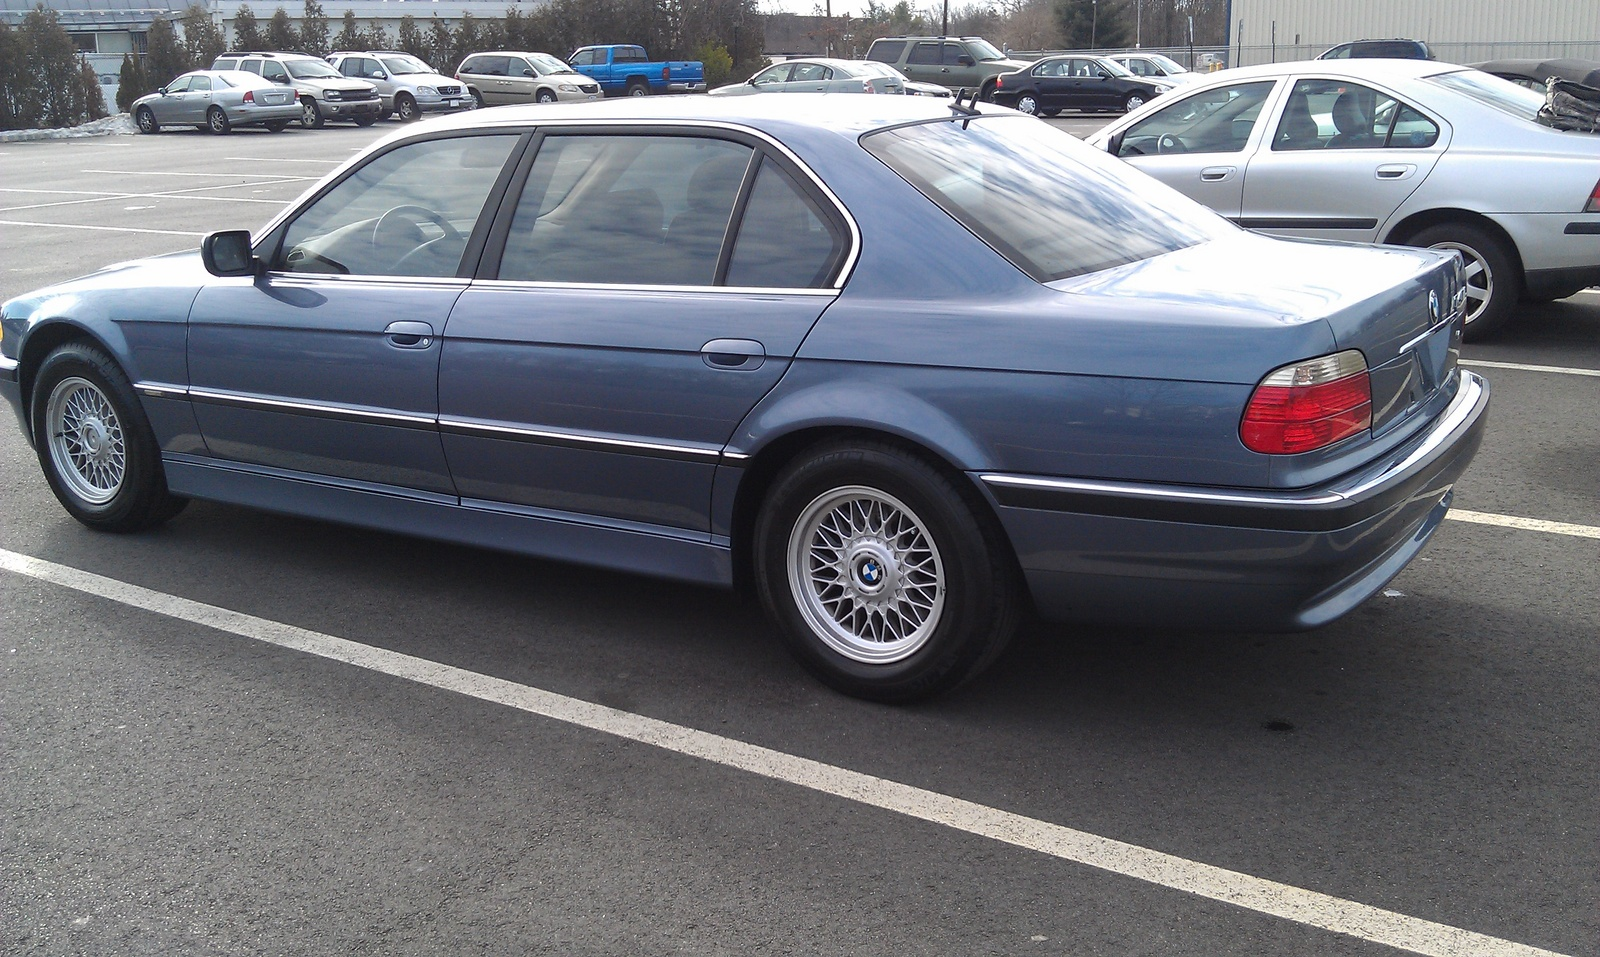 2001 BMW 7 Series - Pictures - CarGurus